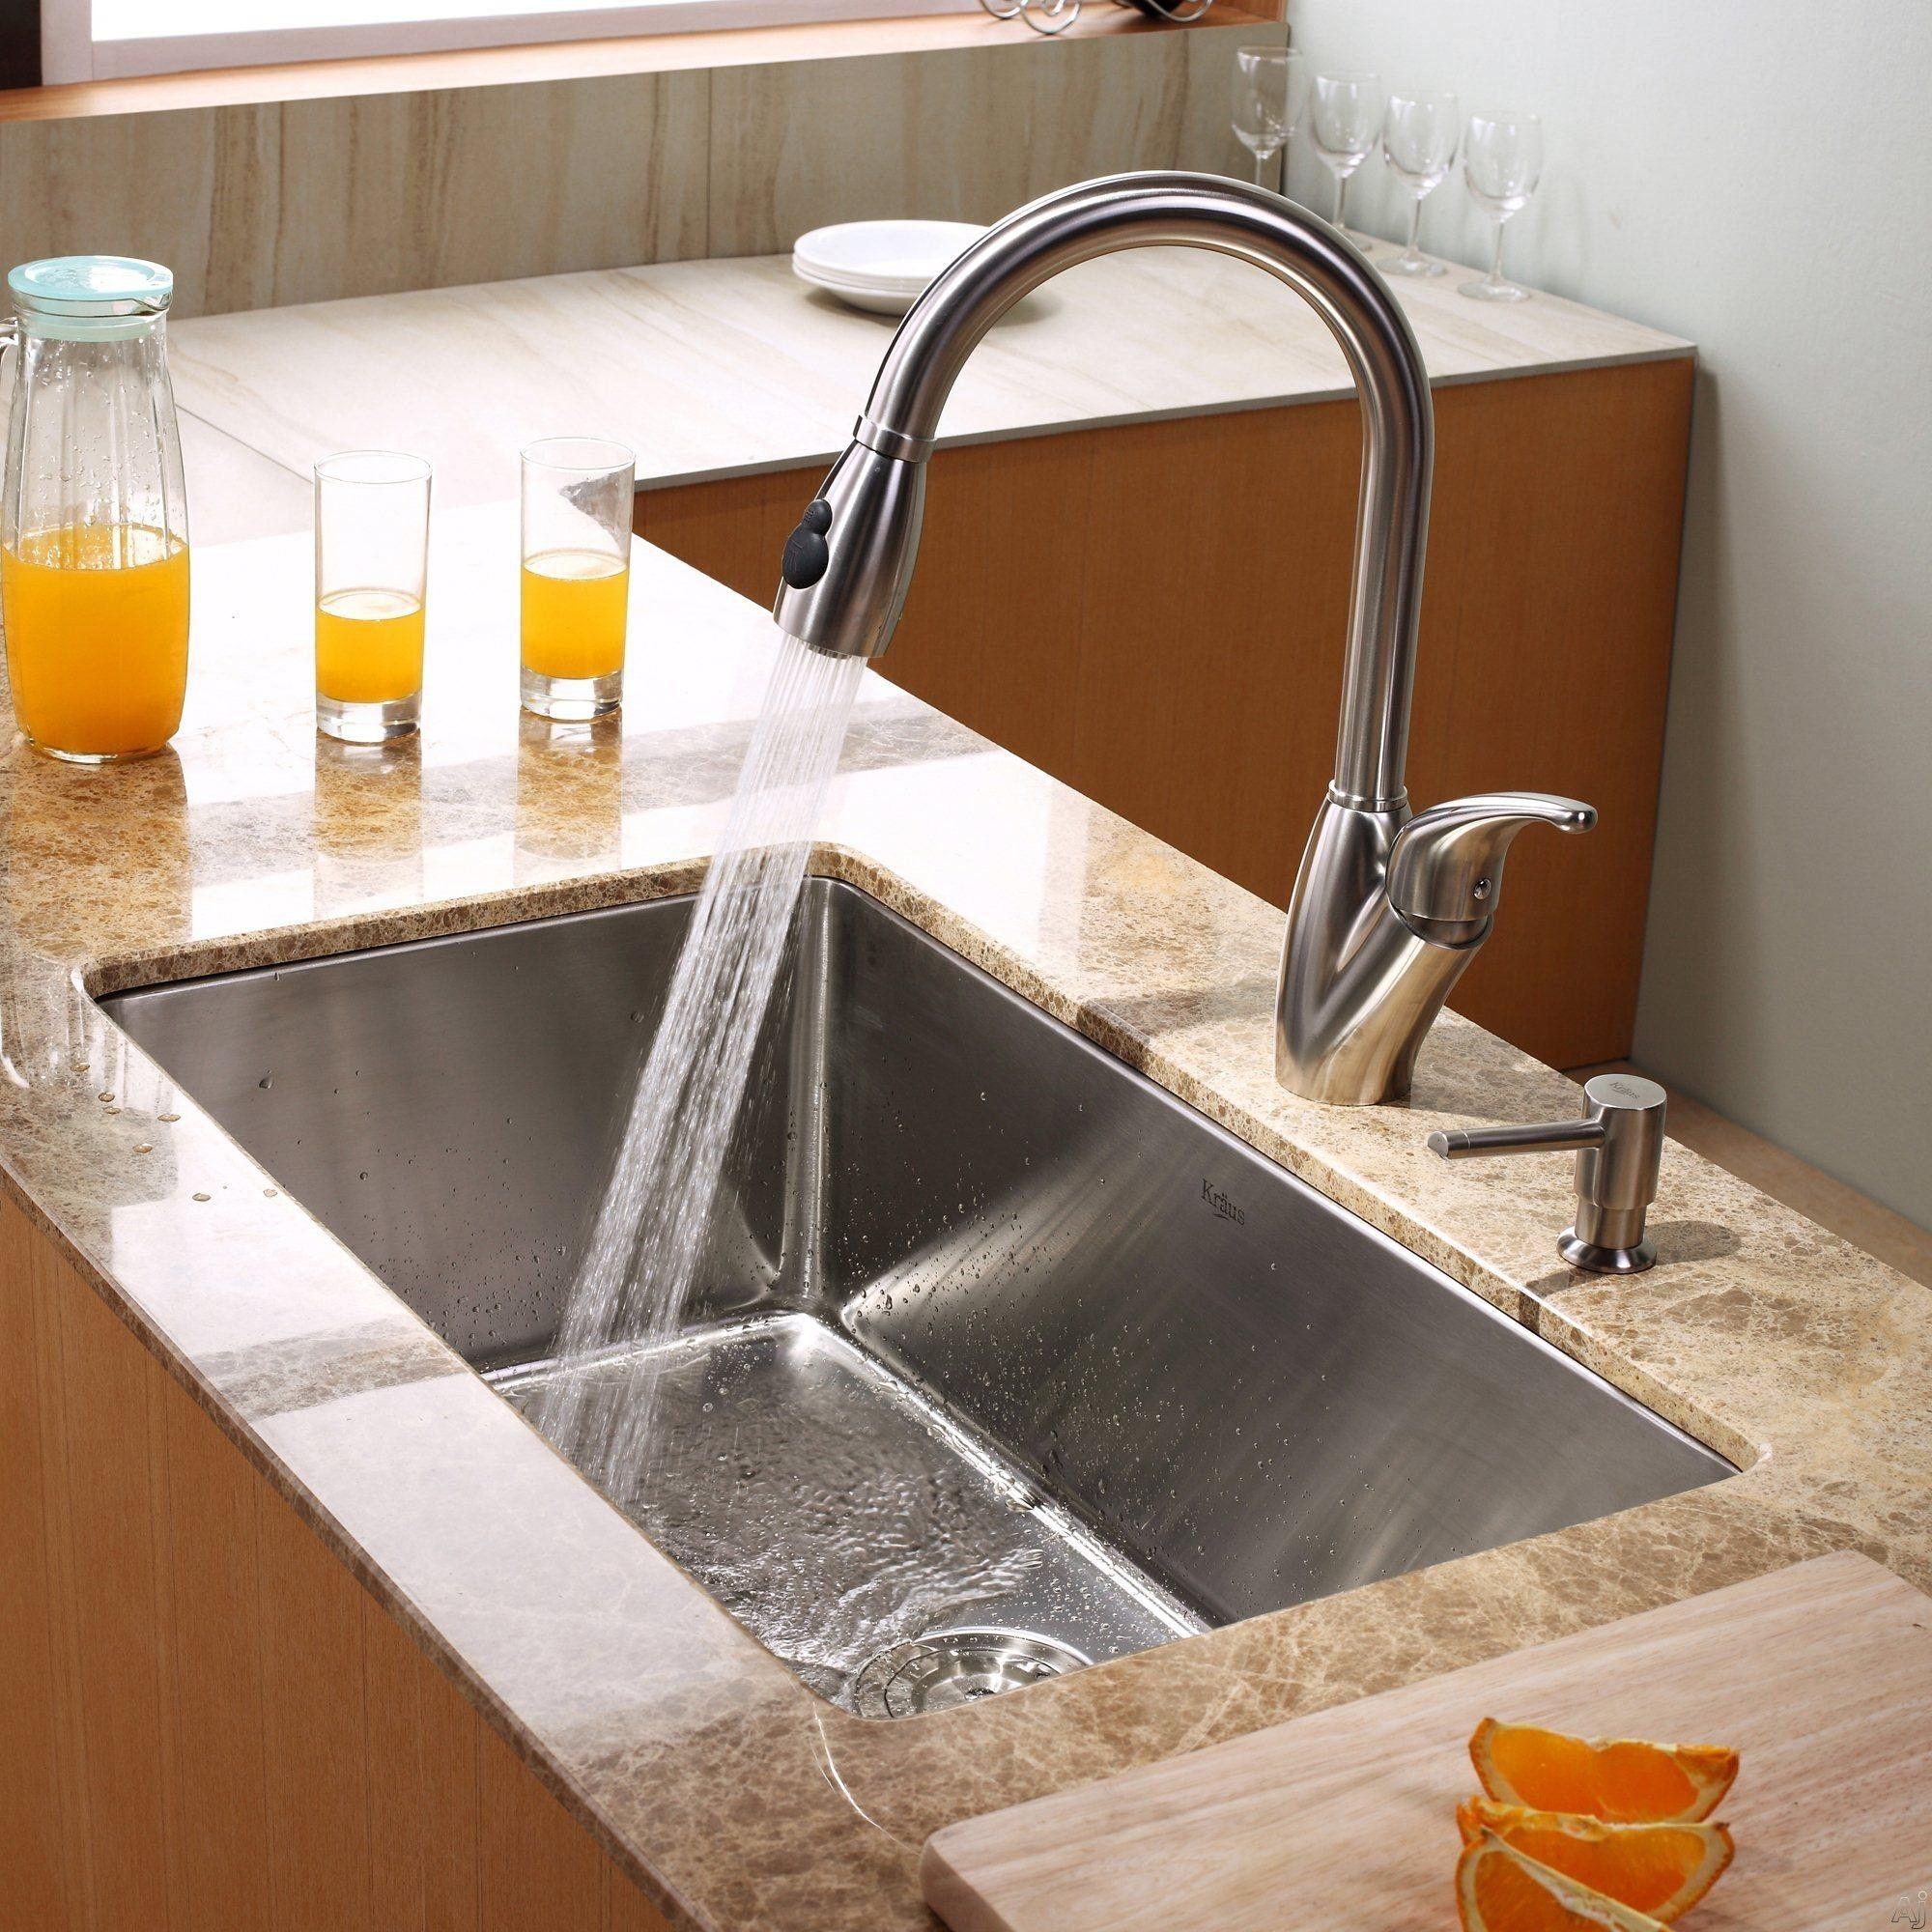 Stunning Undermount Sink Design Ideas for Interior Kitchen Decor